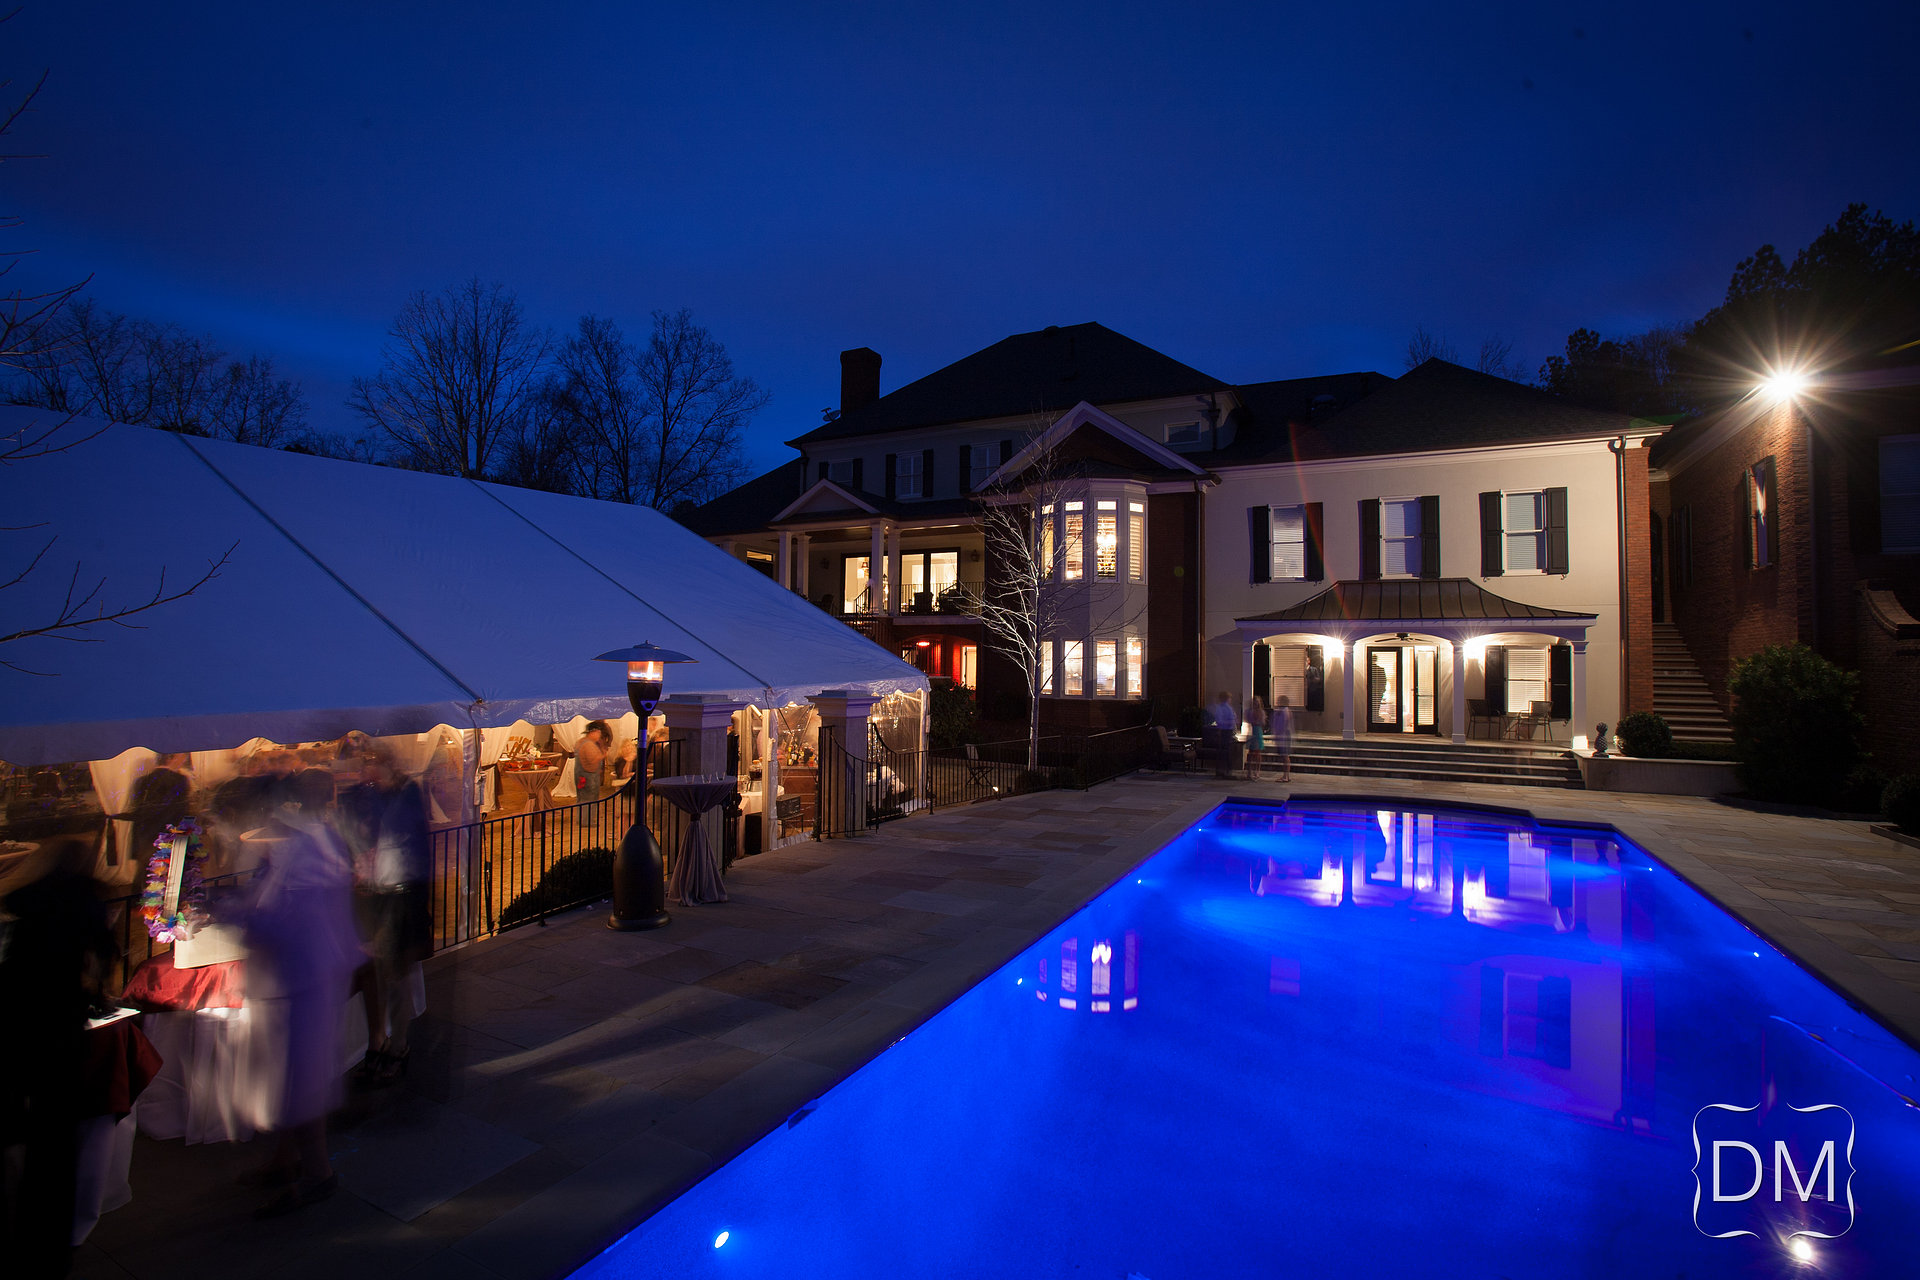 Backyard Wedding Tent & Pool